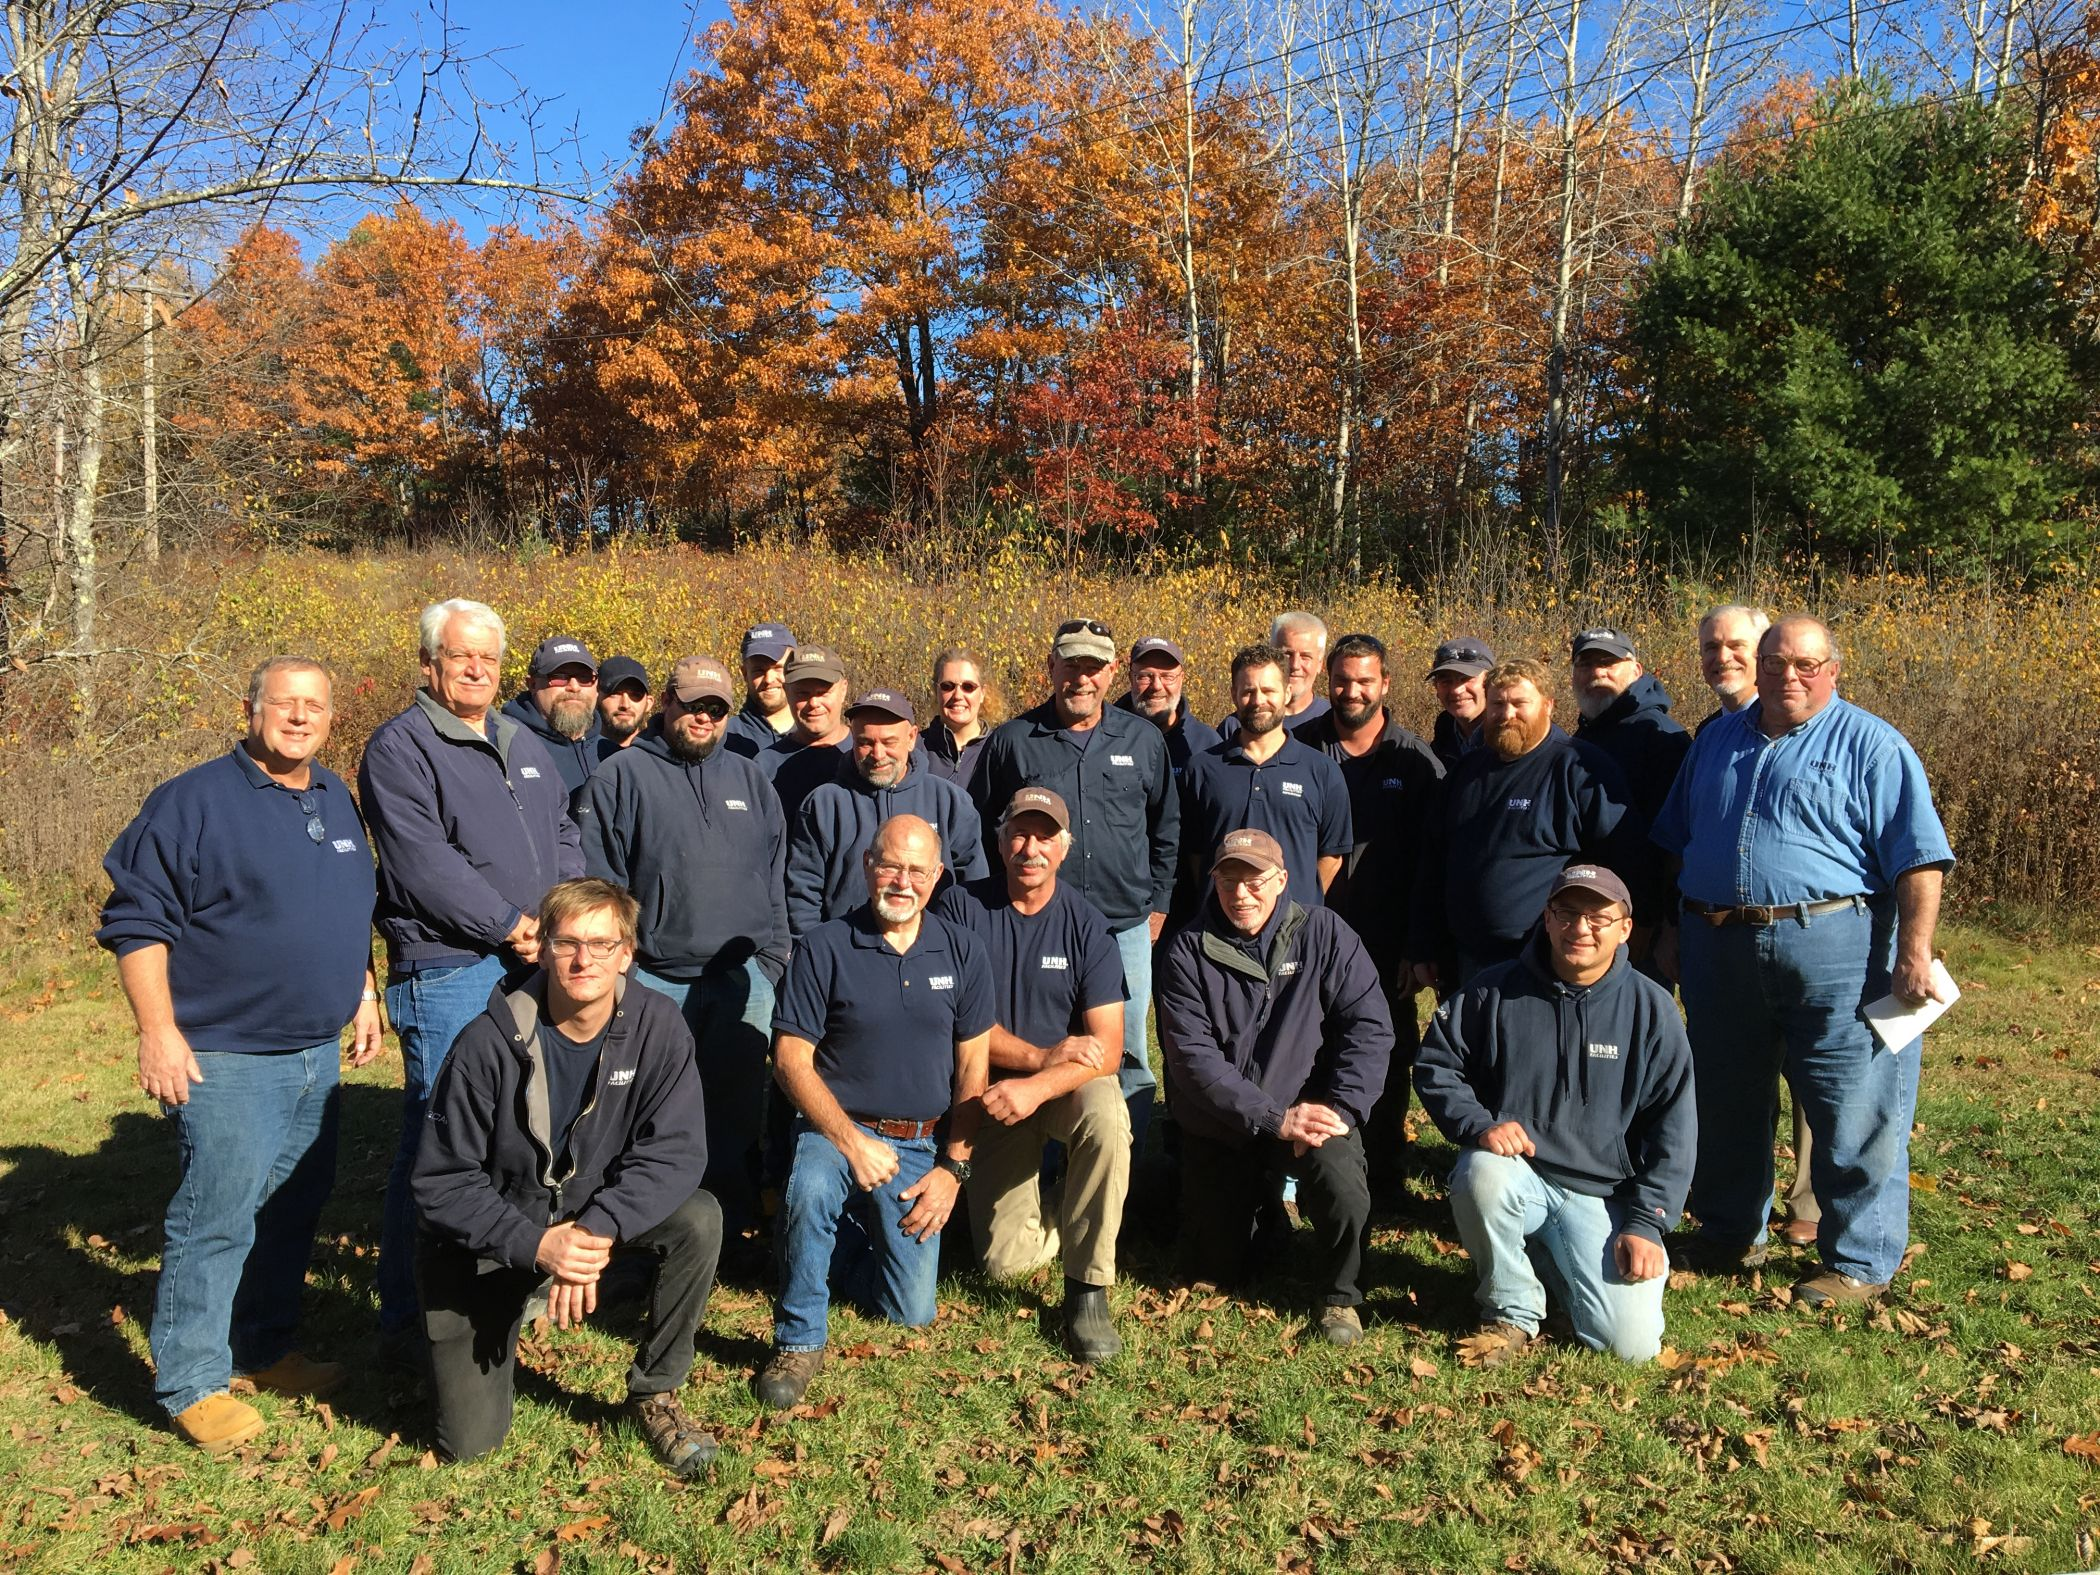 UNH Facilities Grounds and Events crew